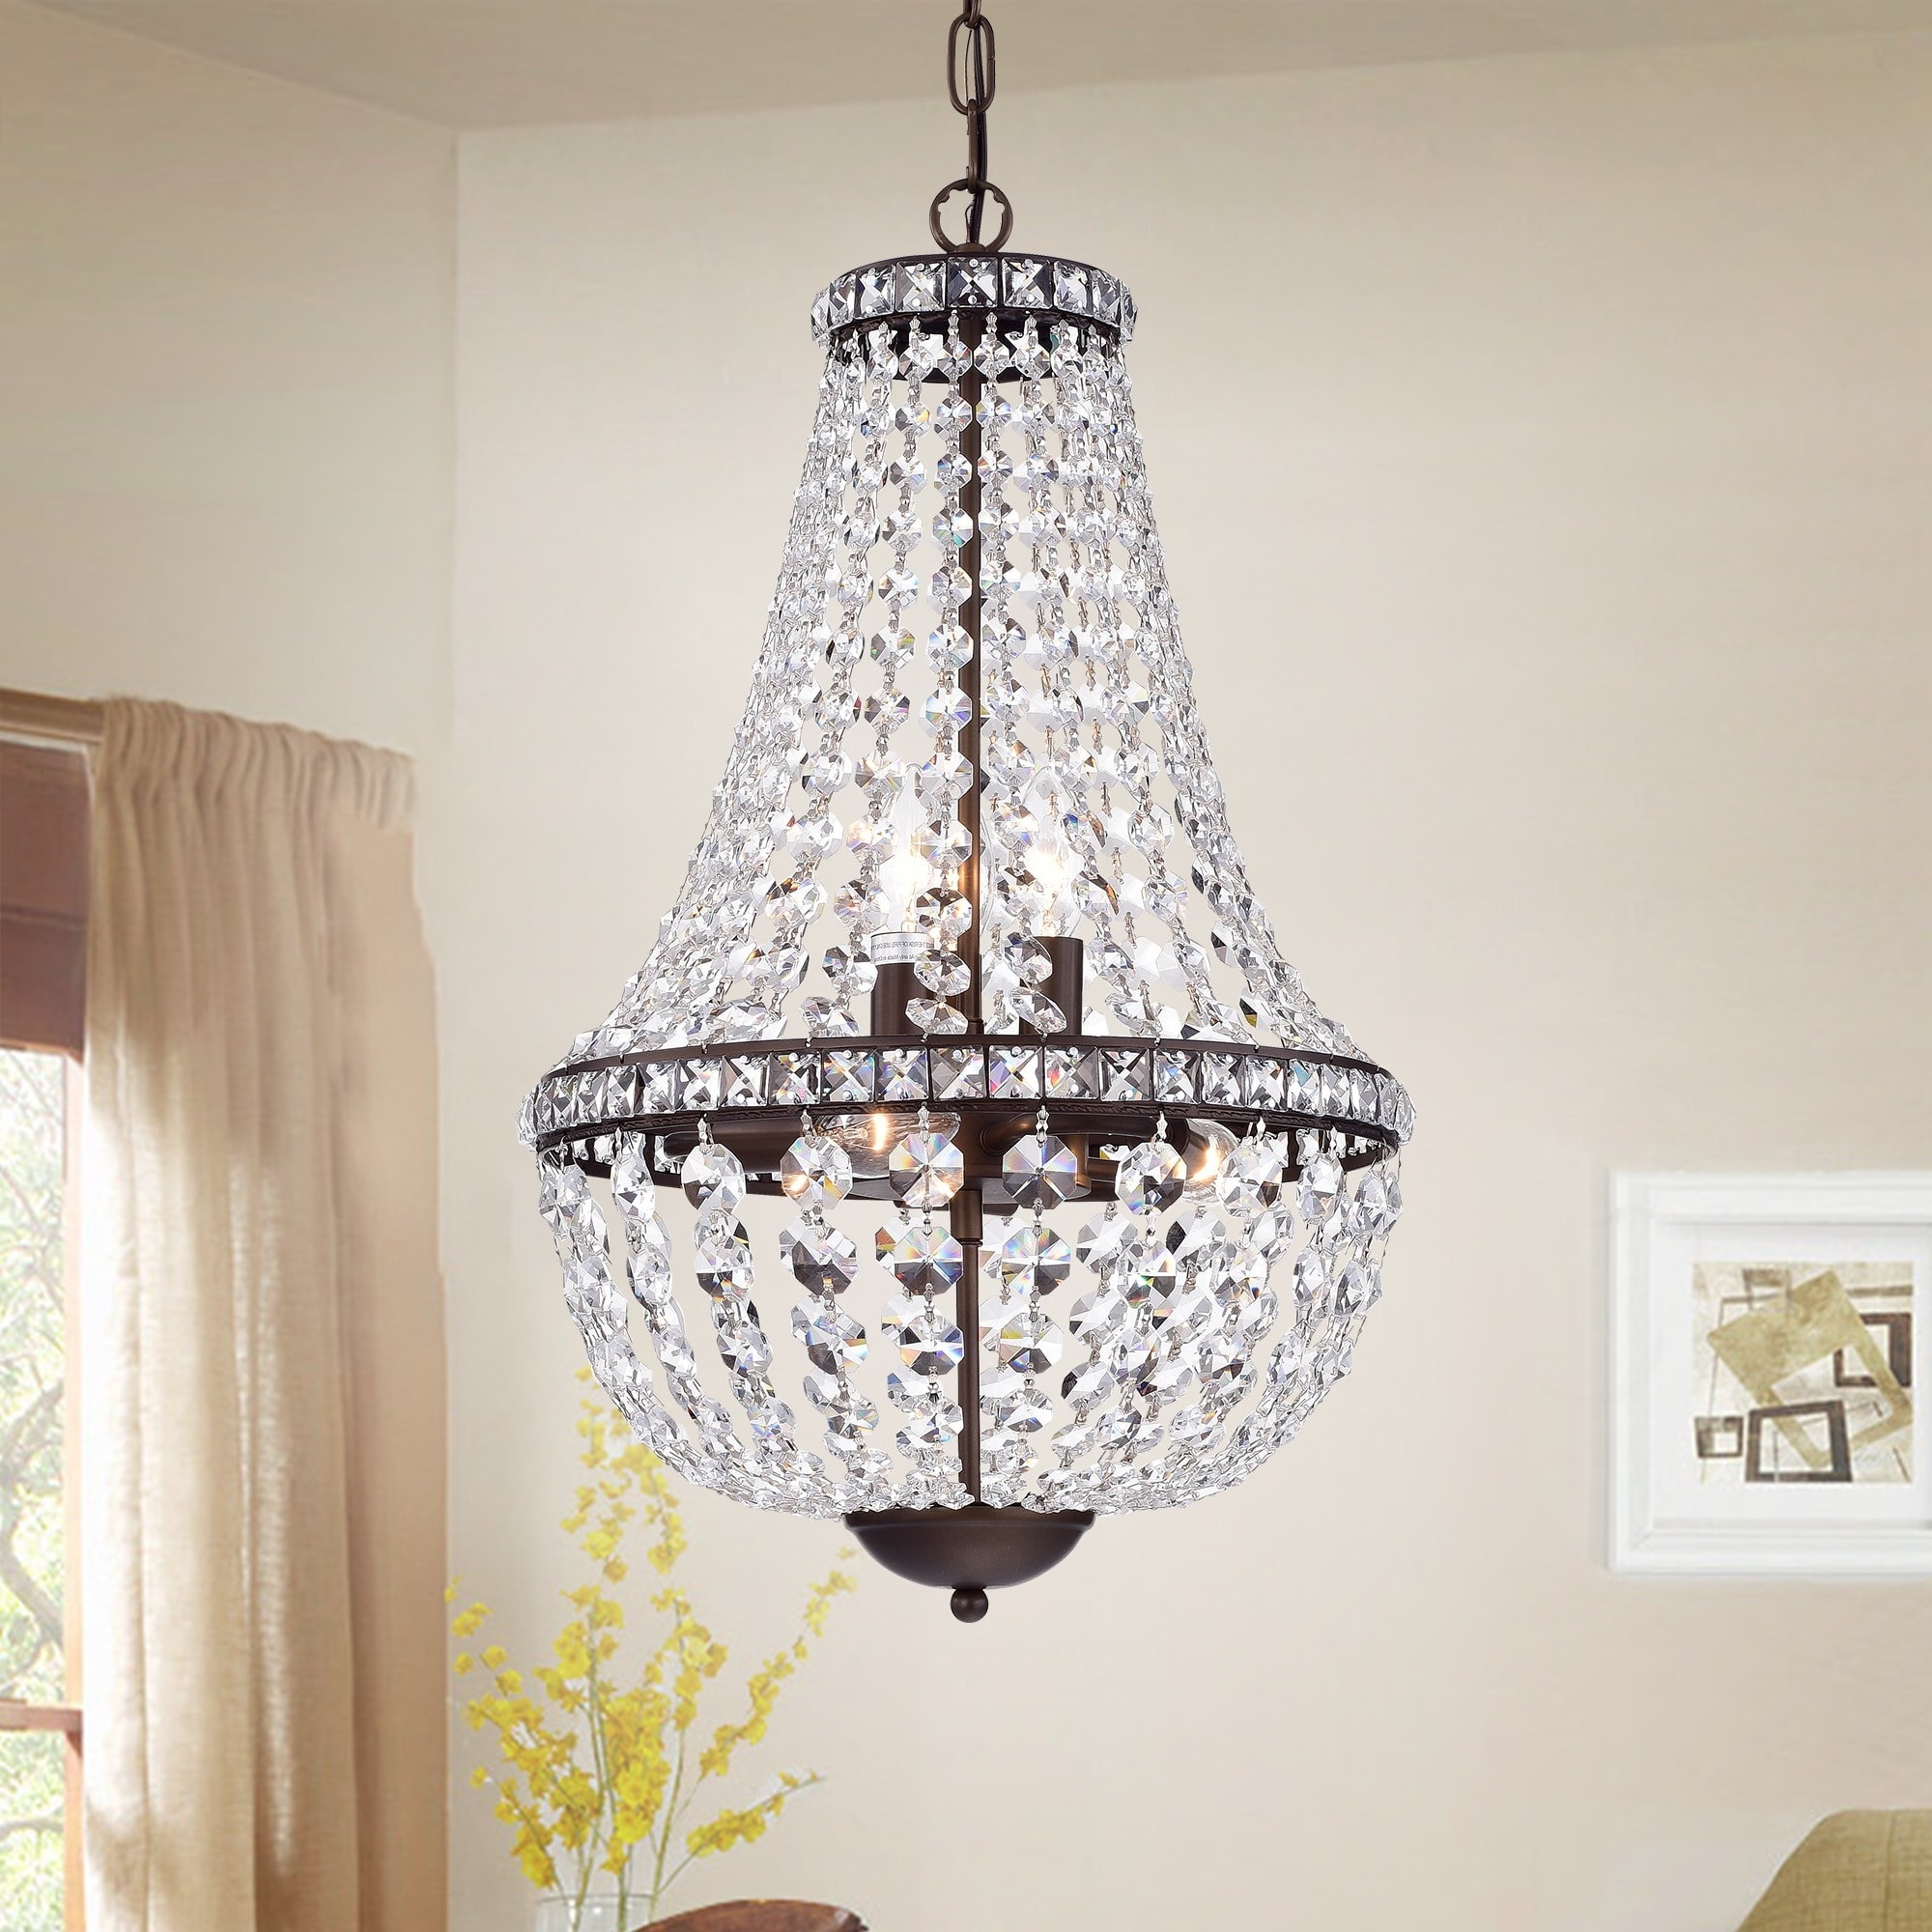 Favorite Uanah 6 Light Crystal Antique Black Chandelier – Free Shipping Today Intended For Antique Black Chandelier (View 9 of 15)